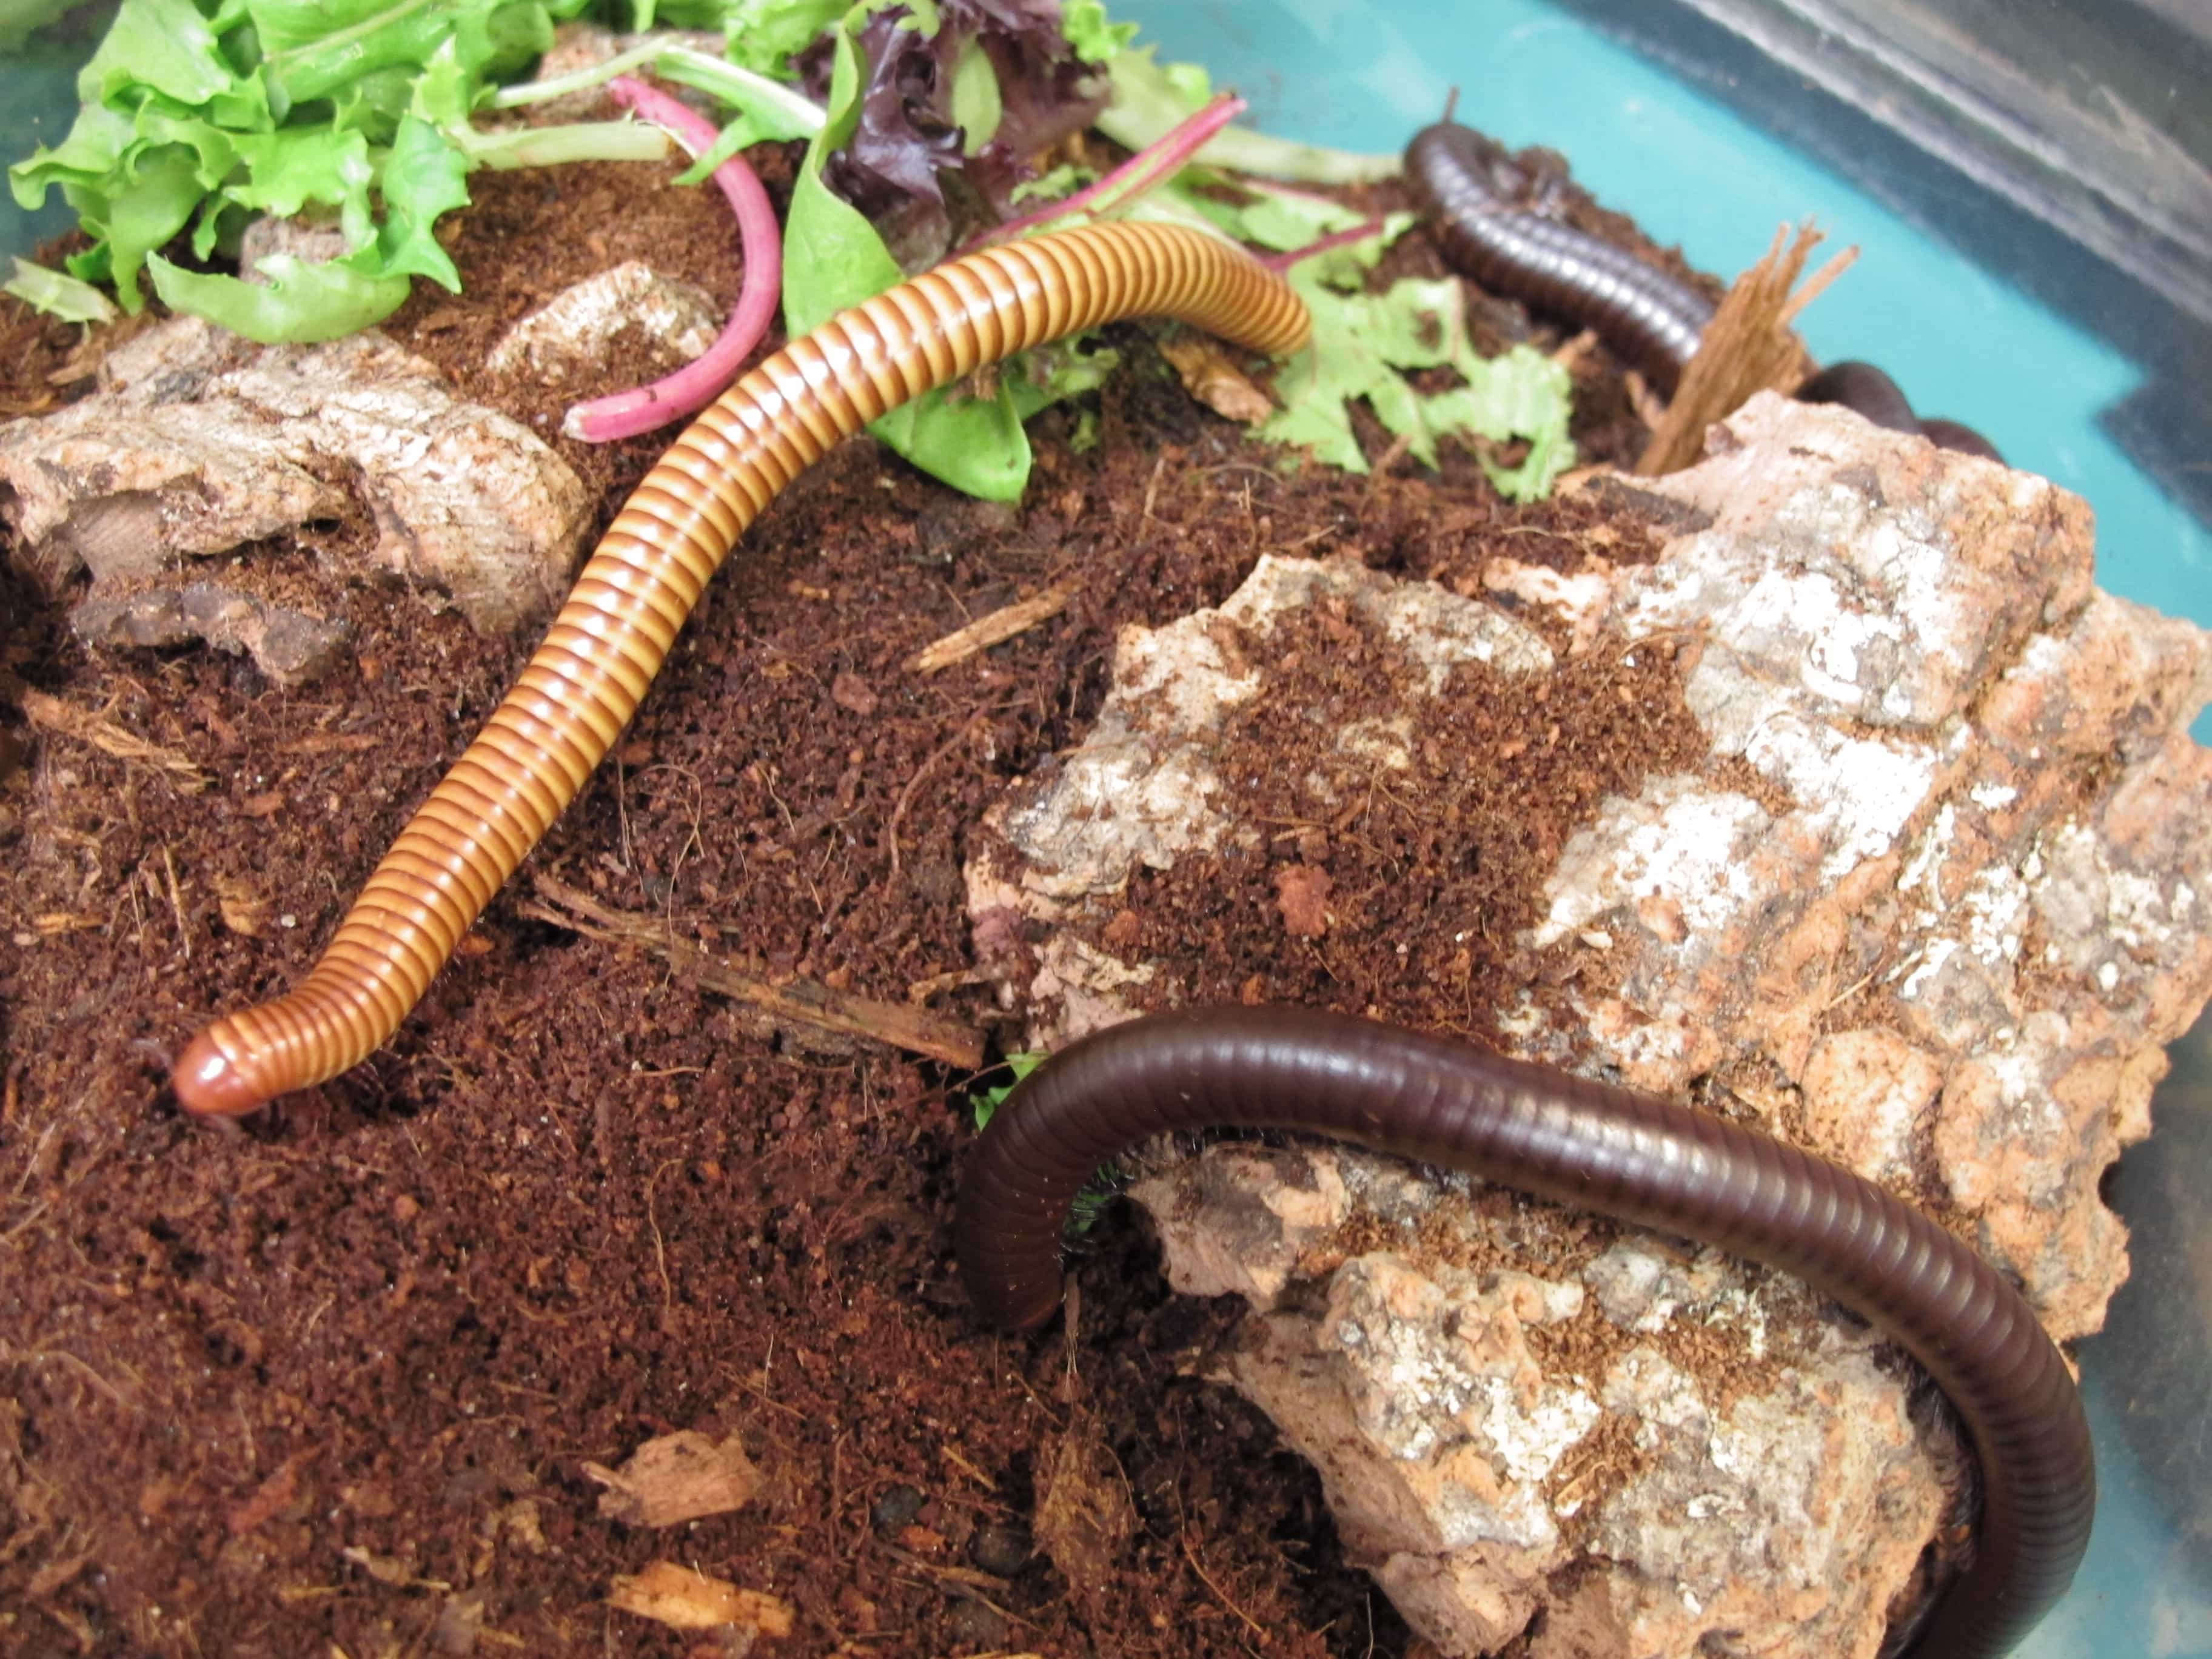 Giant Texas Brown and Gold Millipede - Twin Cities Reptiles